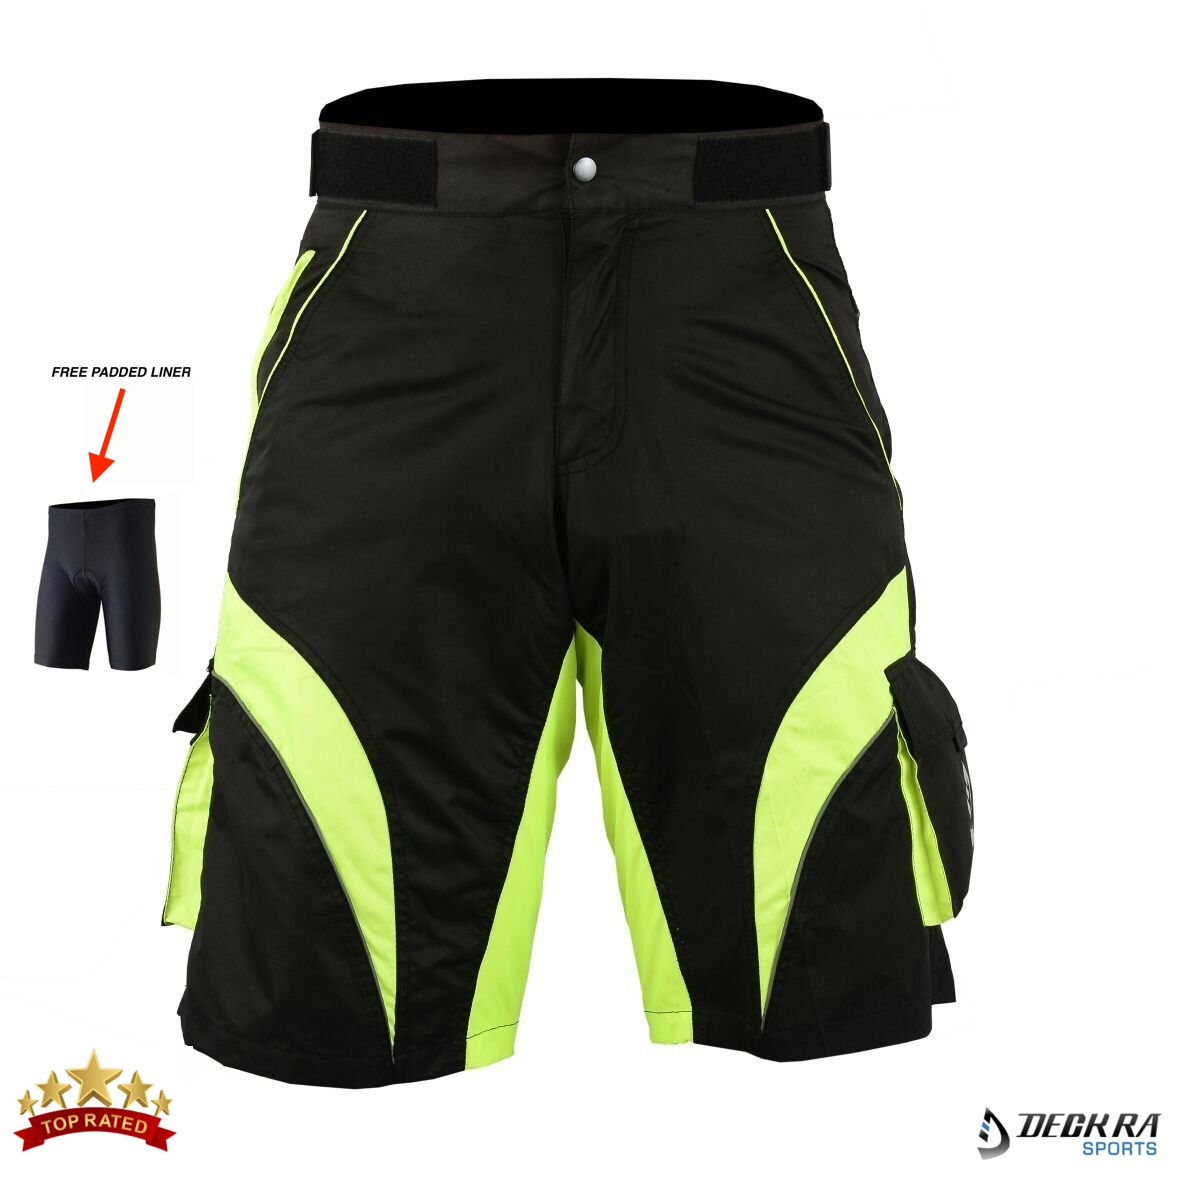 eec0411b0e DECKRA: Top Range Cycling Brand For Excellent Comfort & Performance- Our  specifically designed MTB Shorts are non-restrictive, loose fitting and  suitable ...